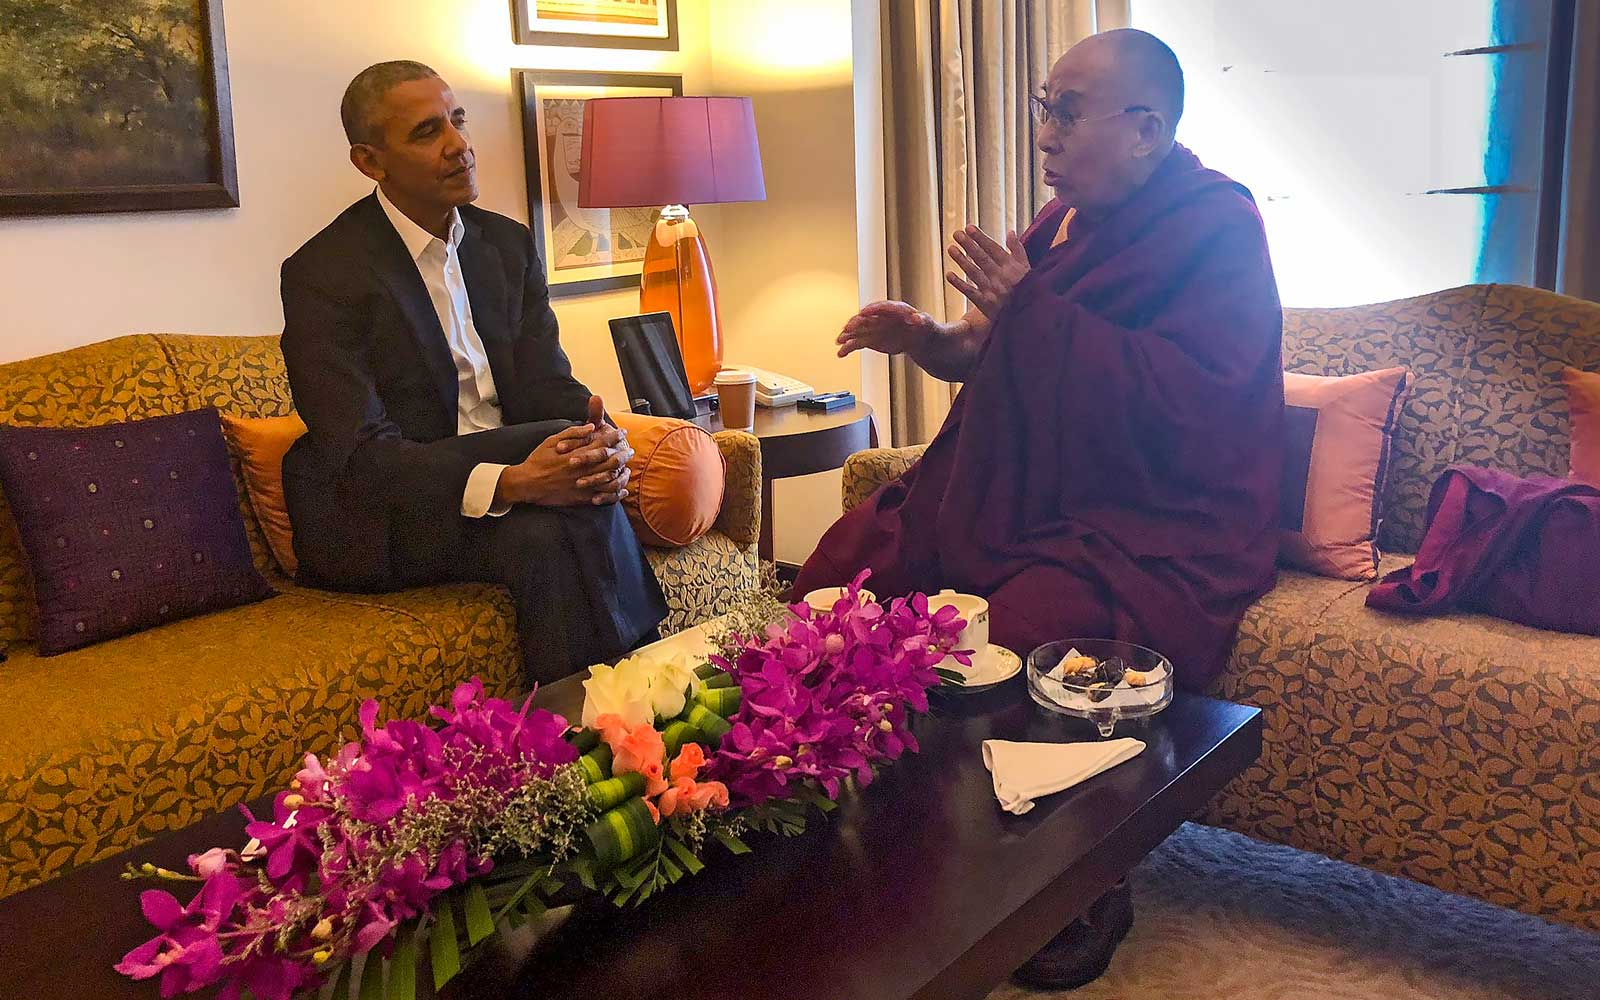 Barack Obama and Dalai Lama meet in hotel room in India